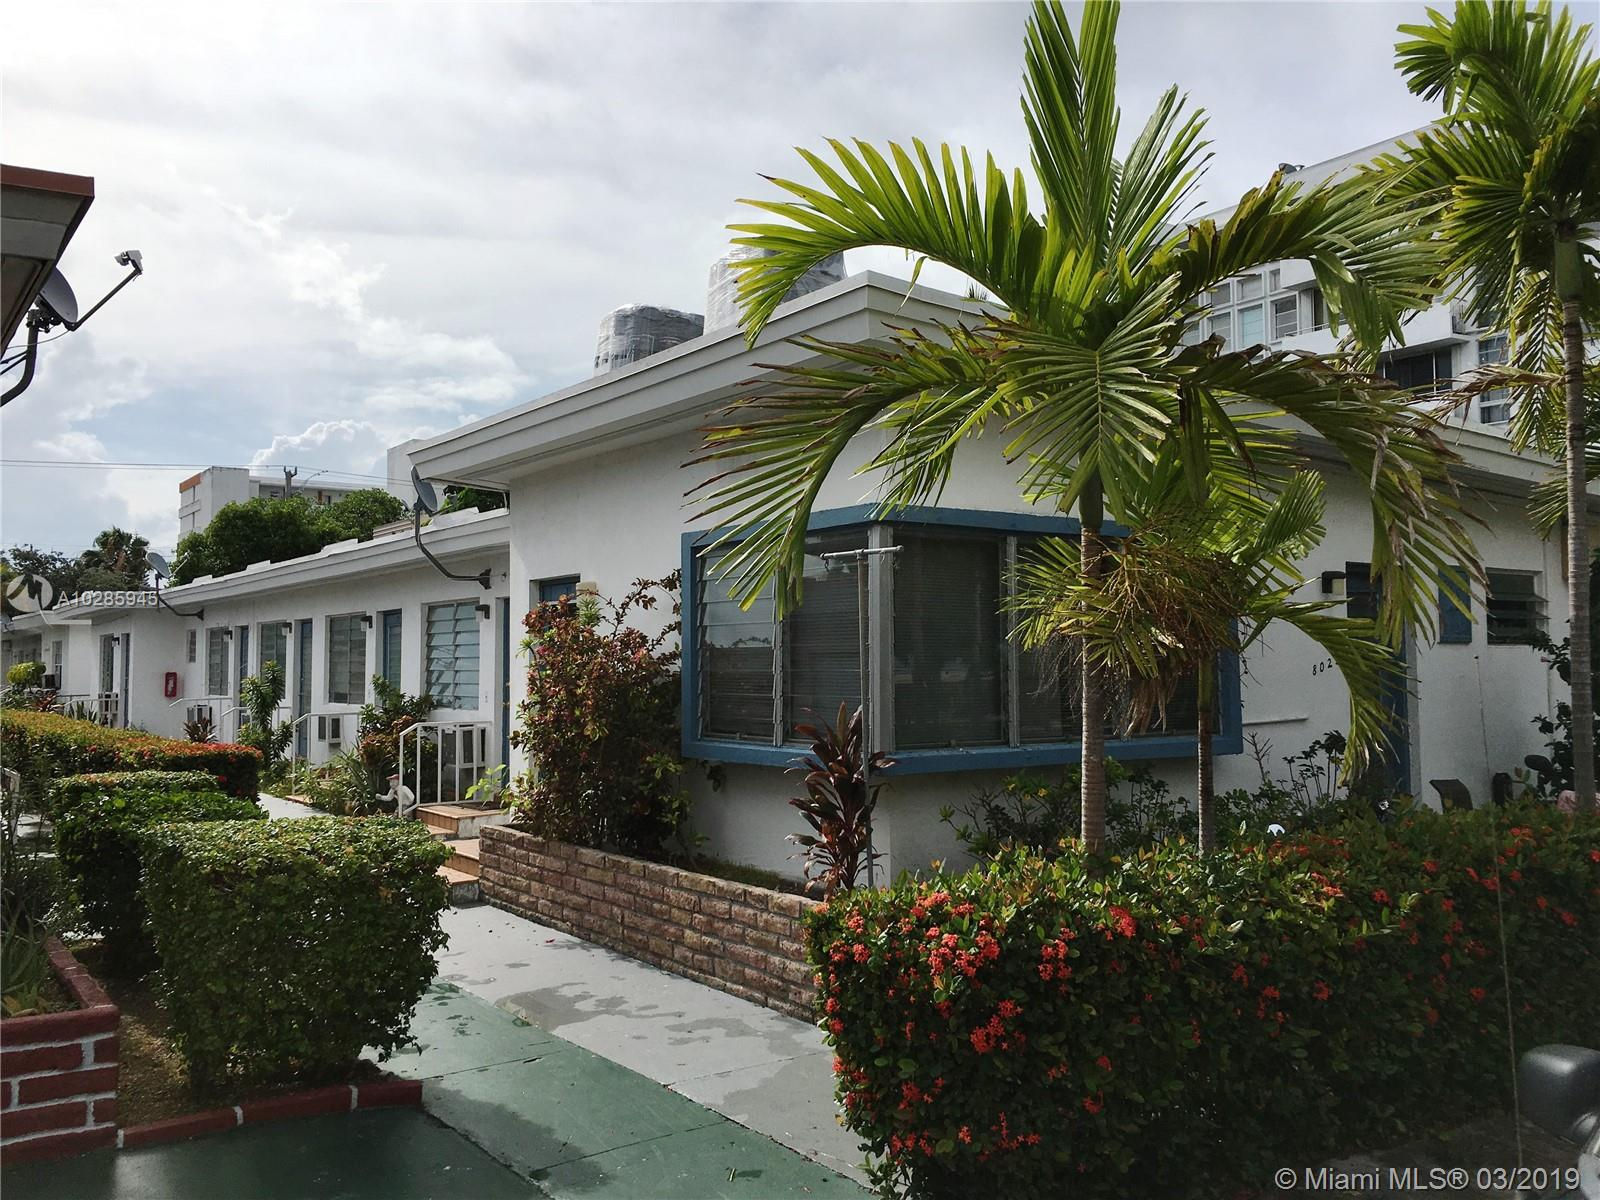 8025 Byron Ave, Miami Beach, Florida 33141, ,Commercial Land,For Sale,8025 Byron Ave,A10285945